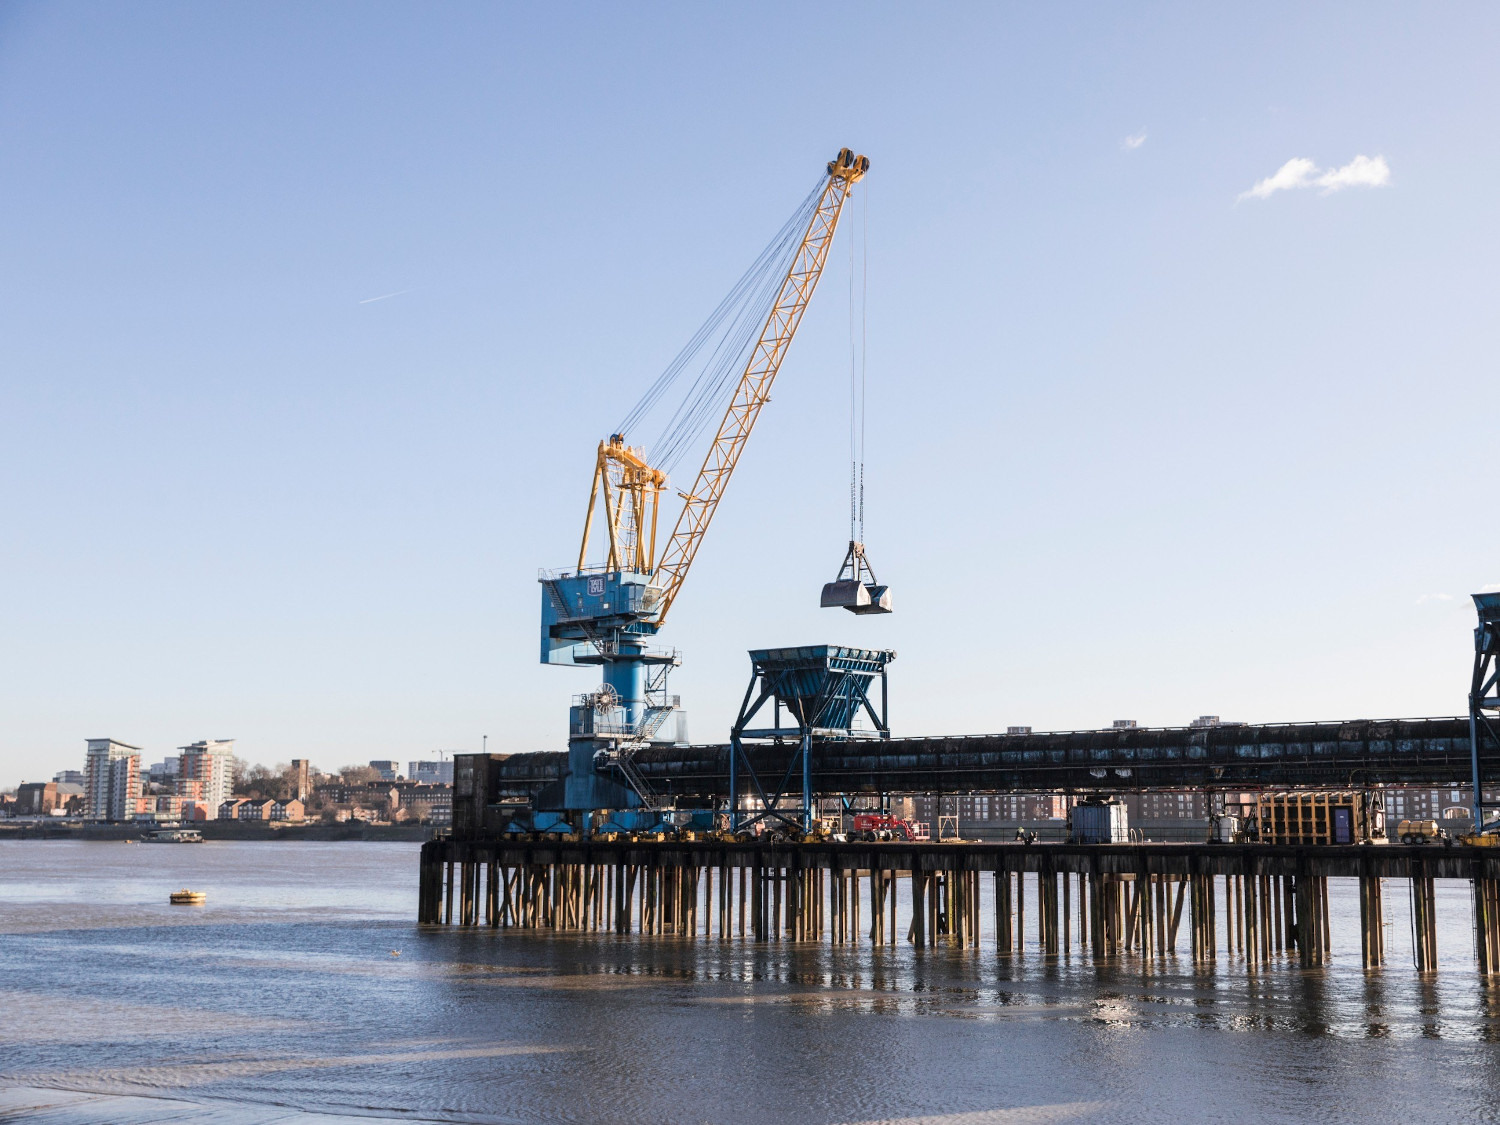 A crane on the pier at the Tate & Lyle factory